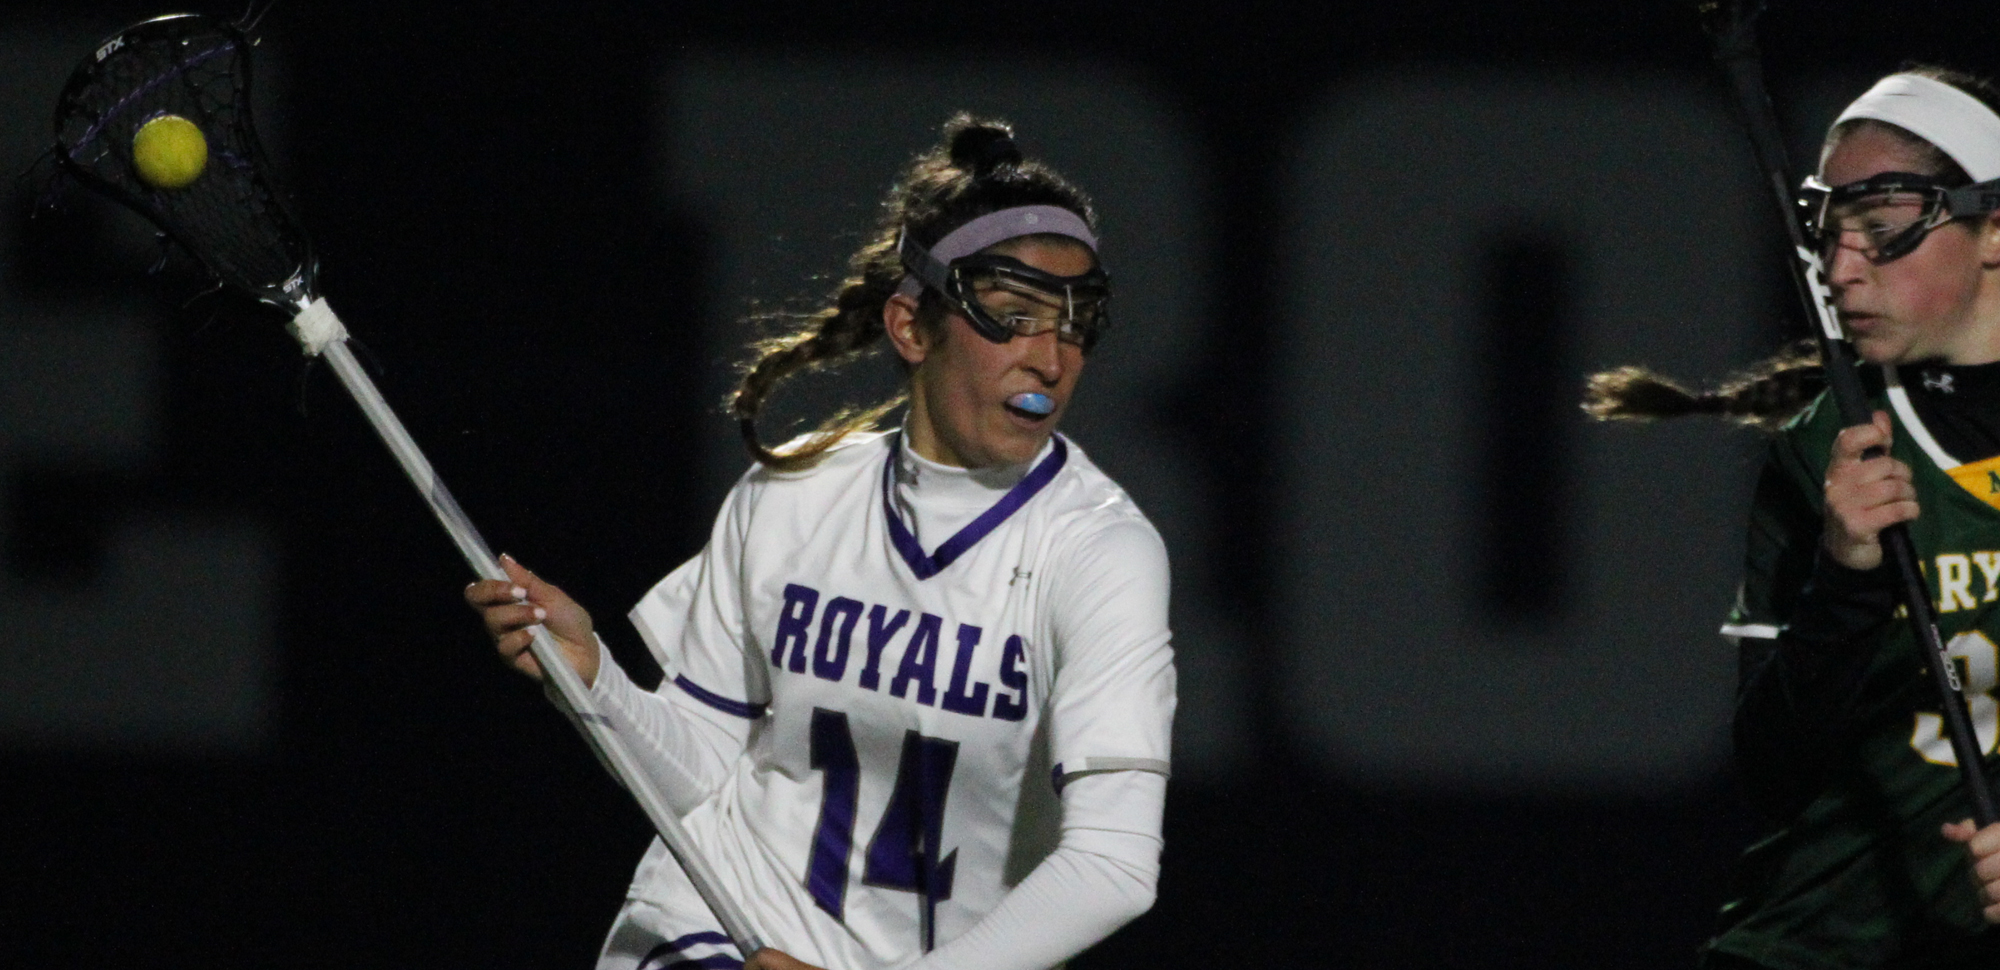 Freshman Halle Conklin scored three goals including the game-winner on Tuesday night as Scranton rallied for an 11-10 win at Rowan. © Photo by Timothy R. Dougherty / doubleeaglephotography.com